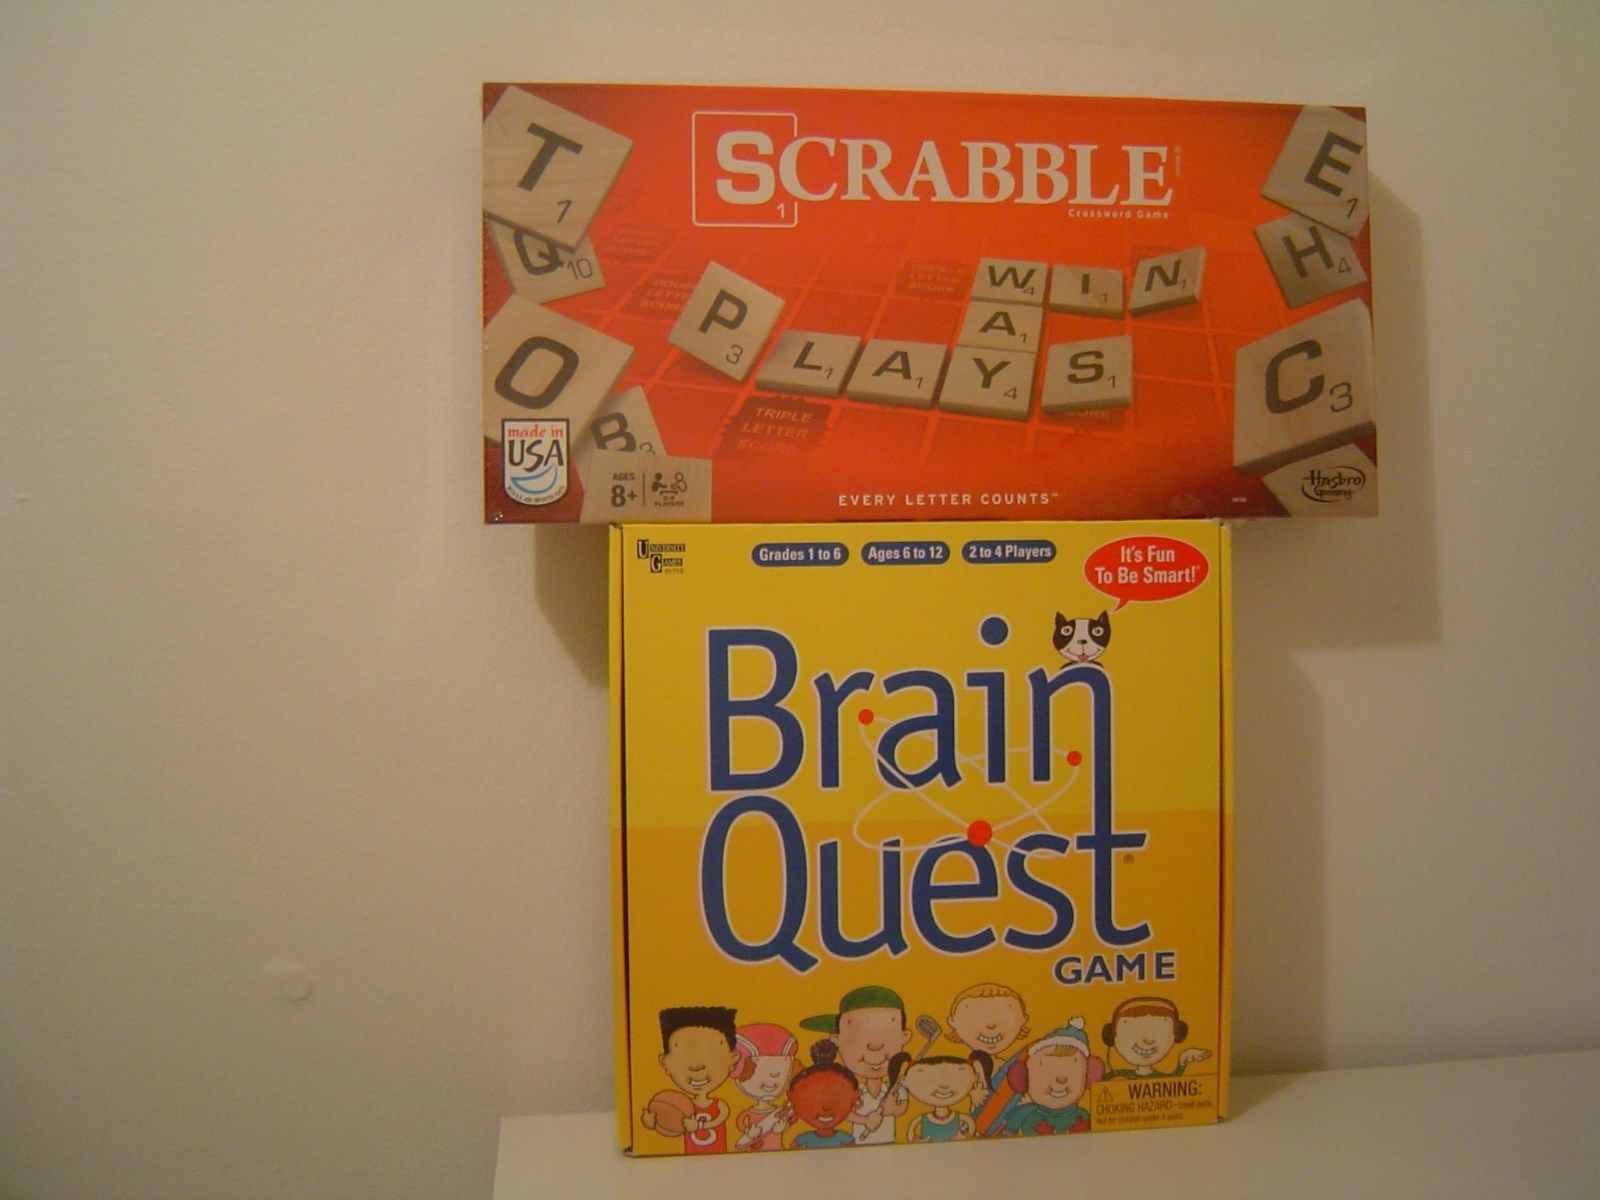 Dating scrabble boards ebay